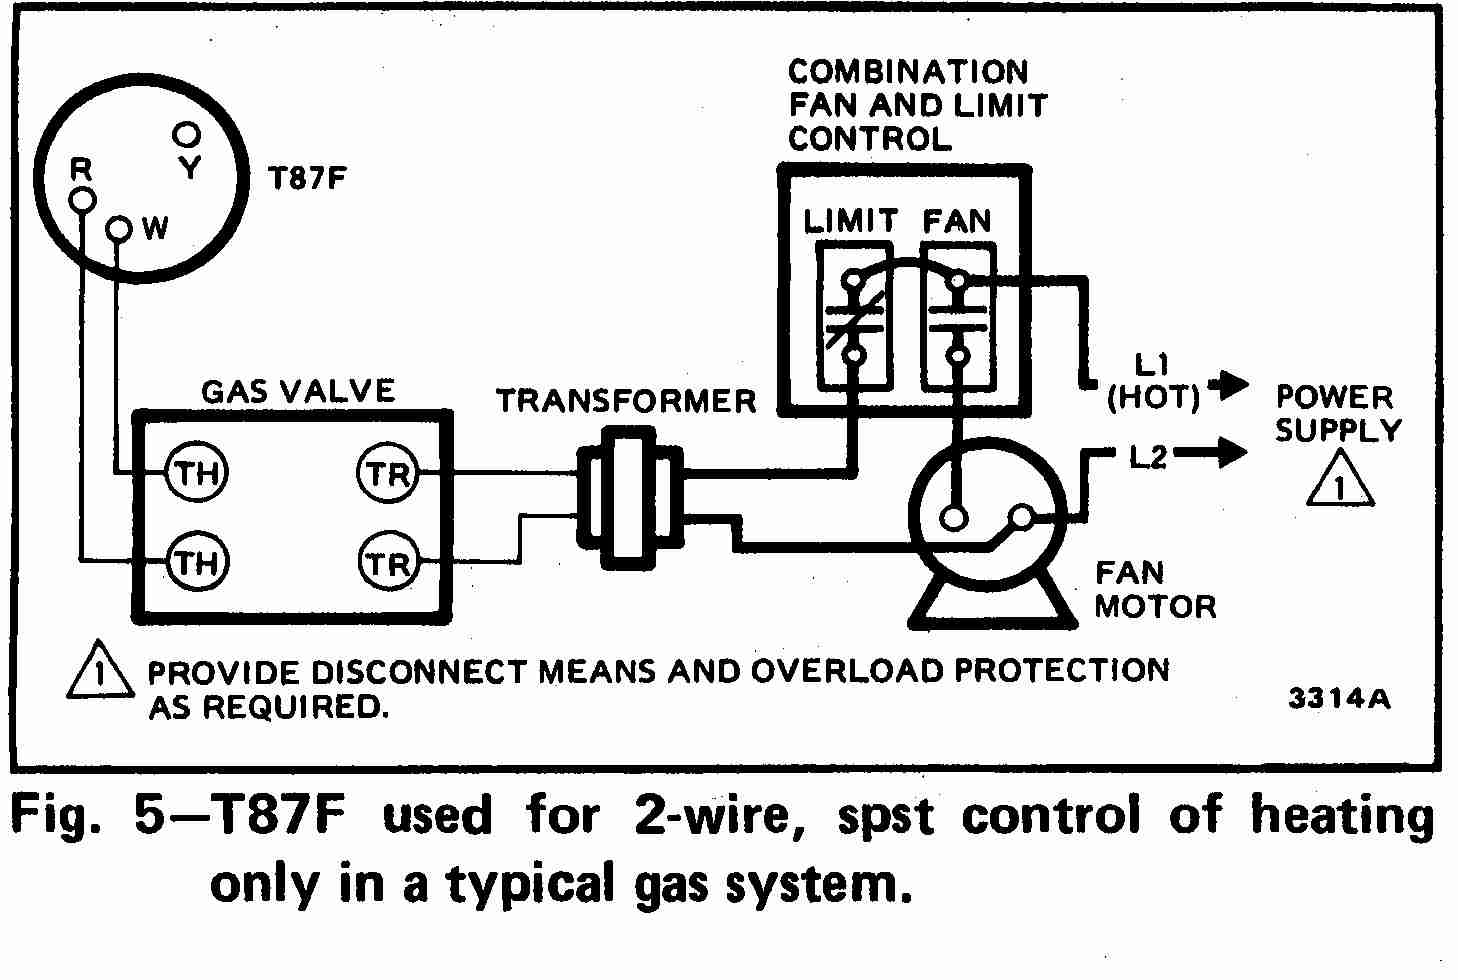 TT_T87F_0002_2Wg_DJF guide to wiring connections for room thermostats 2 wire thermostat wiring diagram heat only at bakdesigns.co